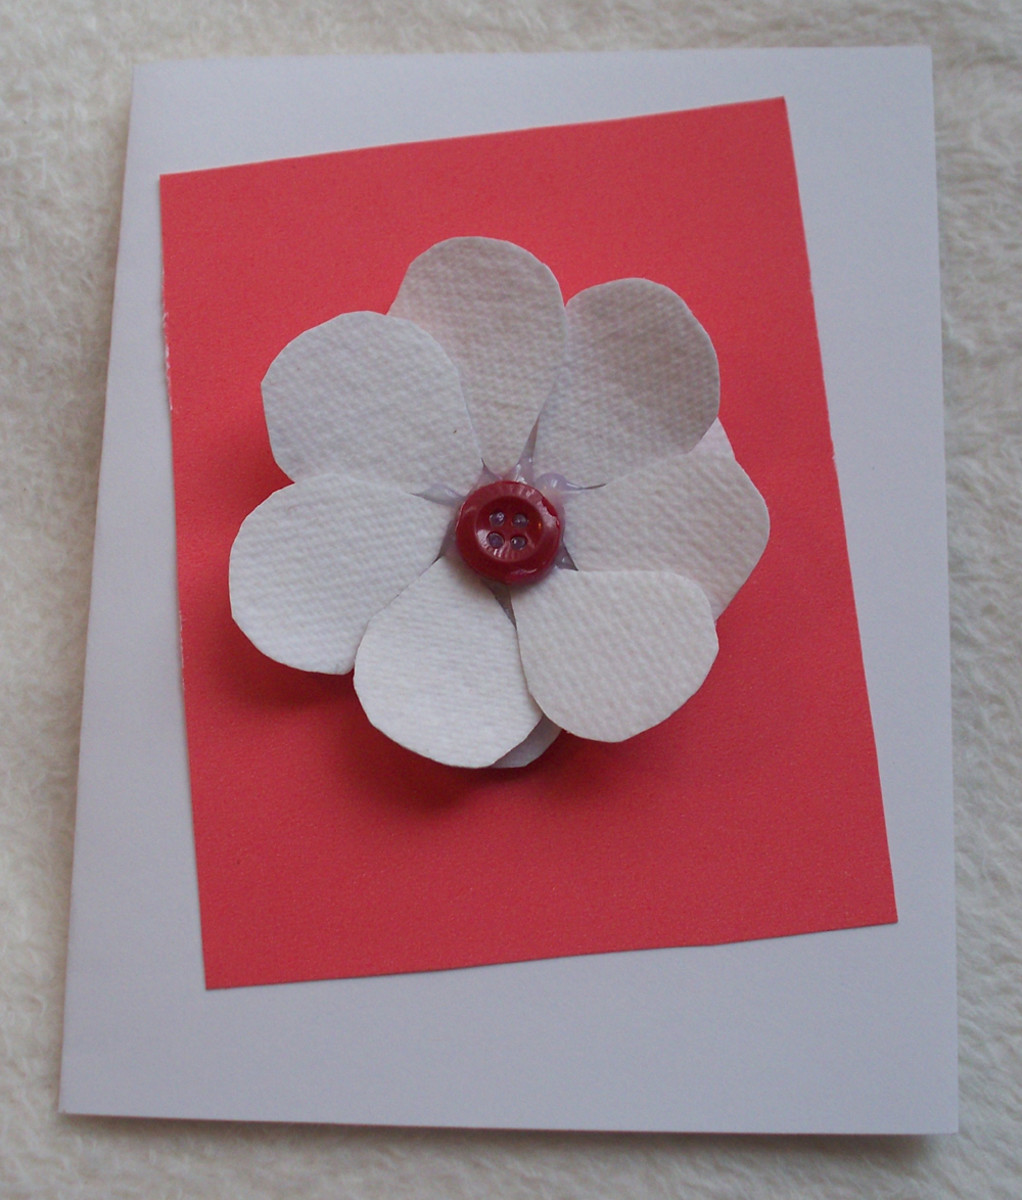 A paper towel flower decoration for the front of a card